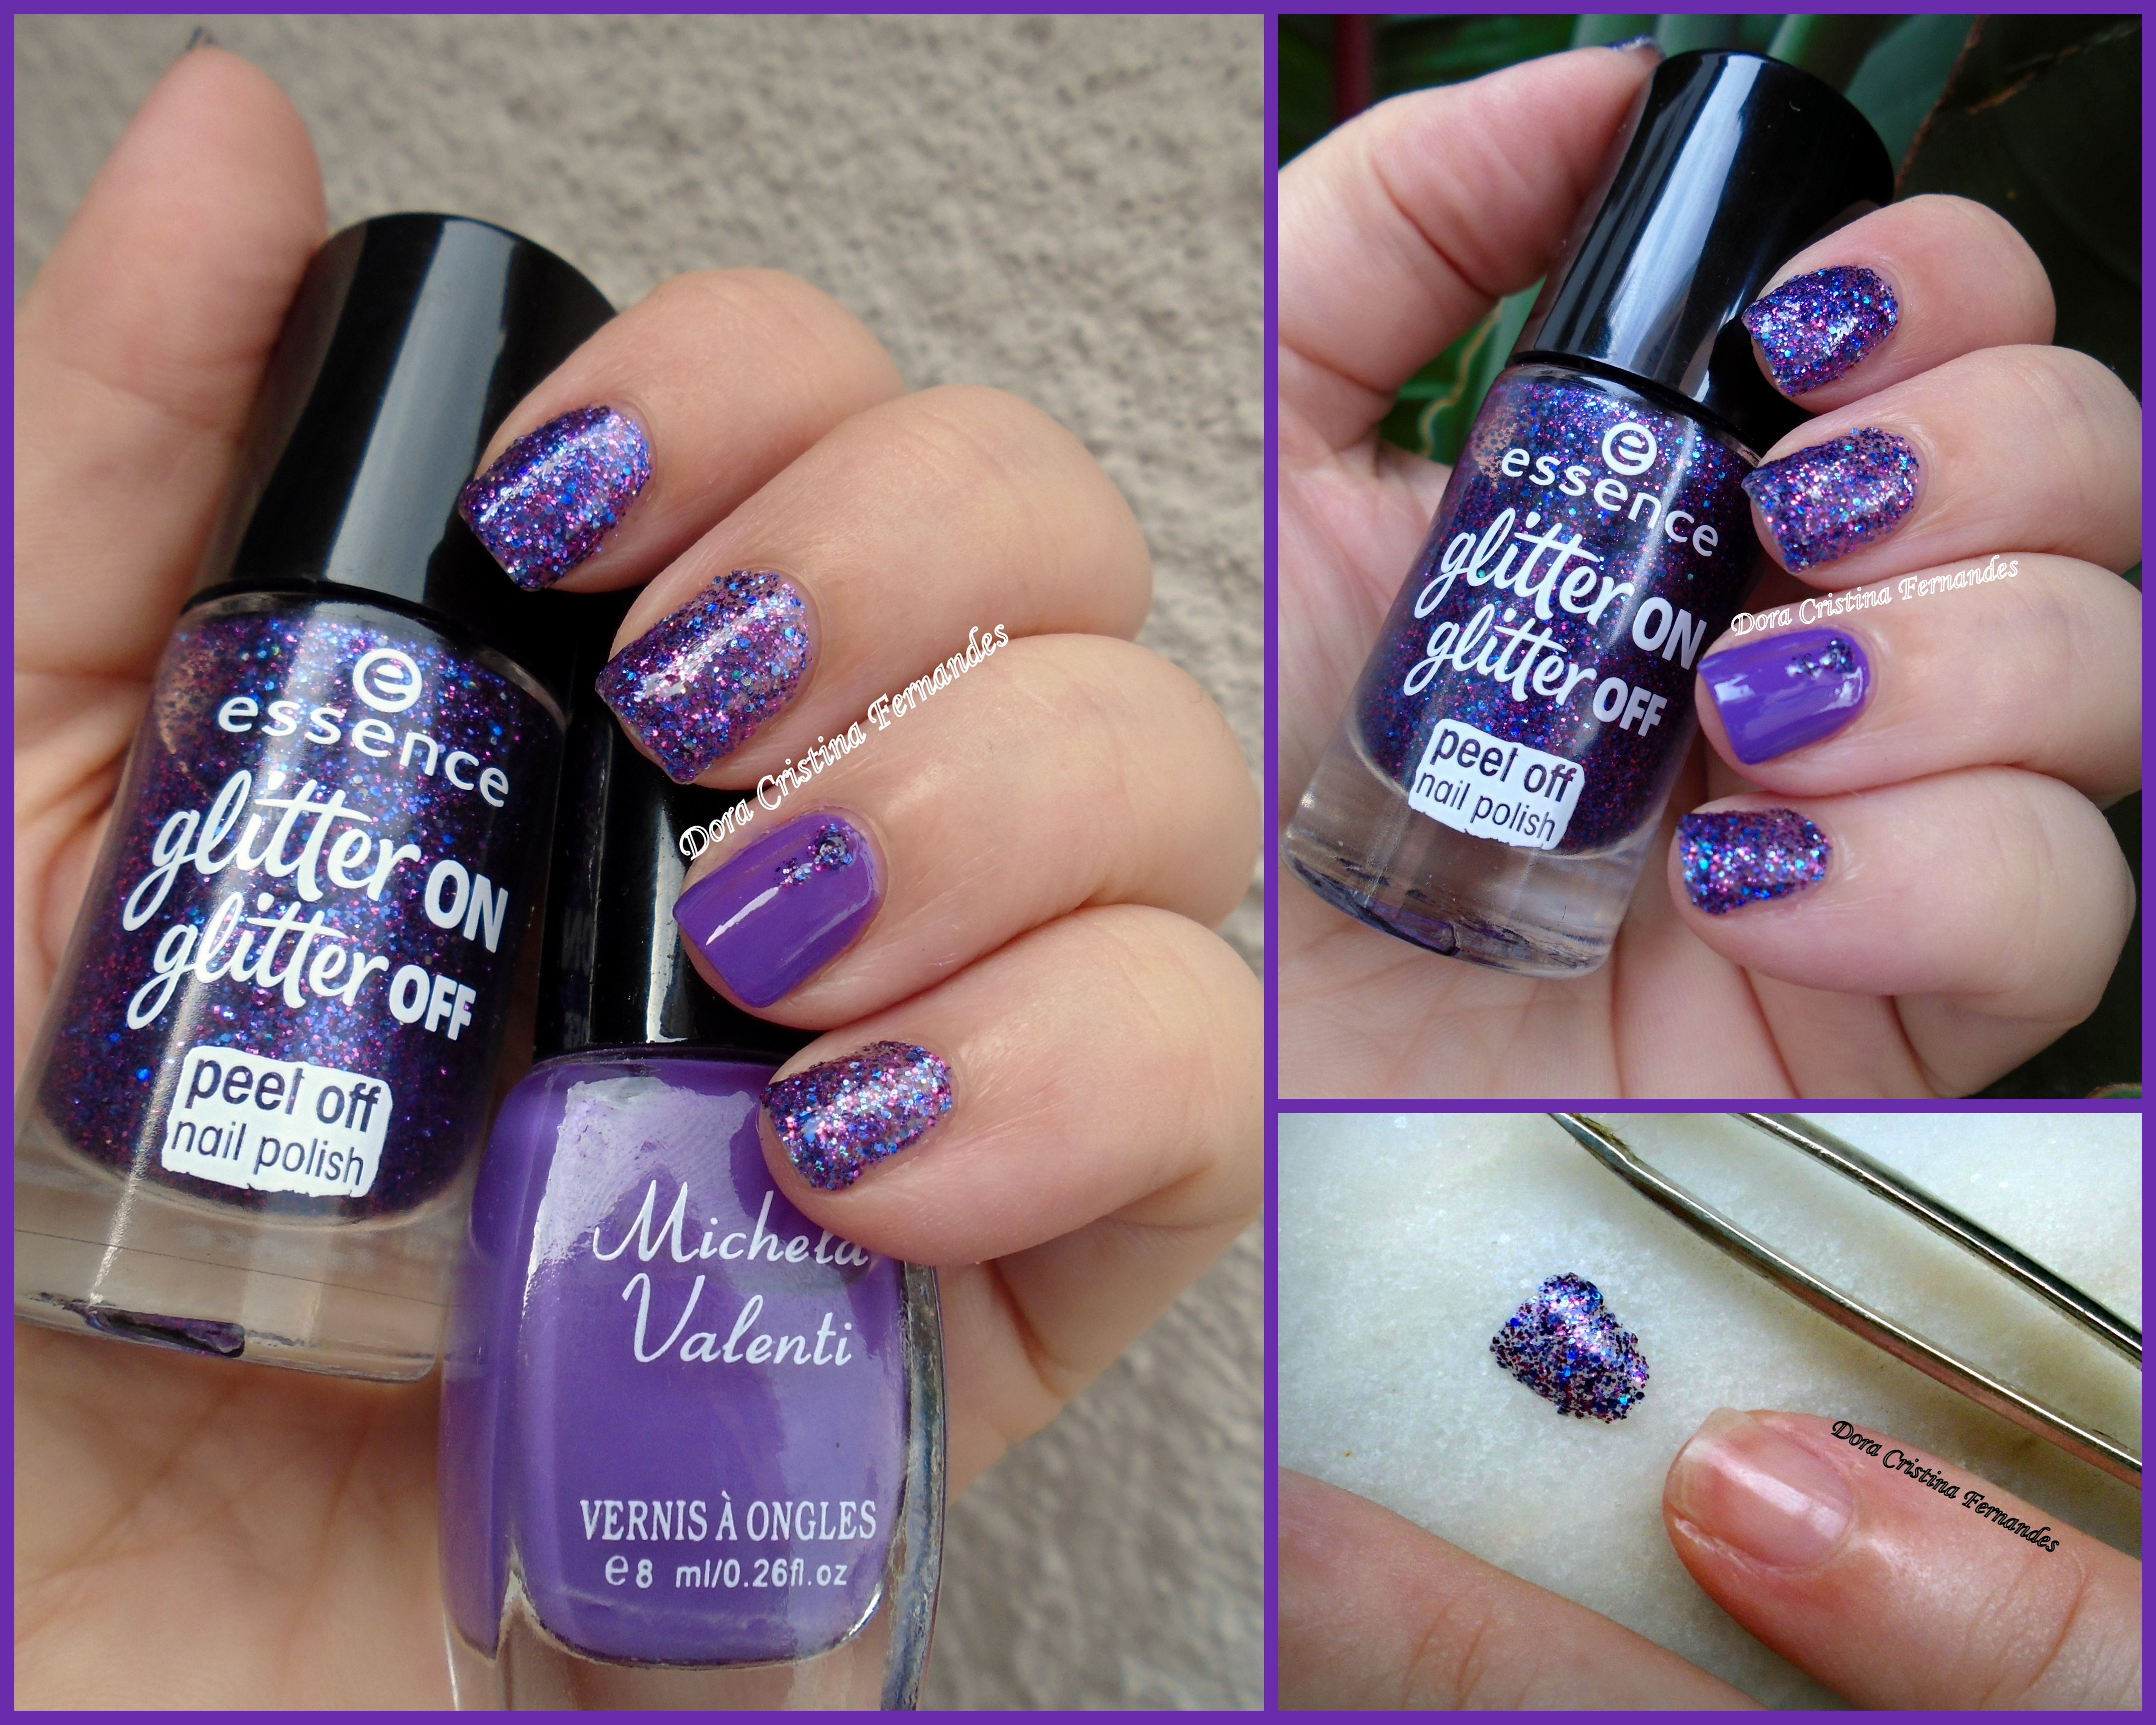 Essence%20glitter%20on%2c%20glitter%20off%20peel%20off%20polish%20%2b%20michela%20valenti%20%2015%20%2b%20%25cinco%20base%20%2b%20colorama%20cobertura%20intensificadora%203%20dias